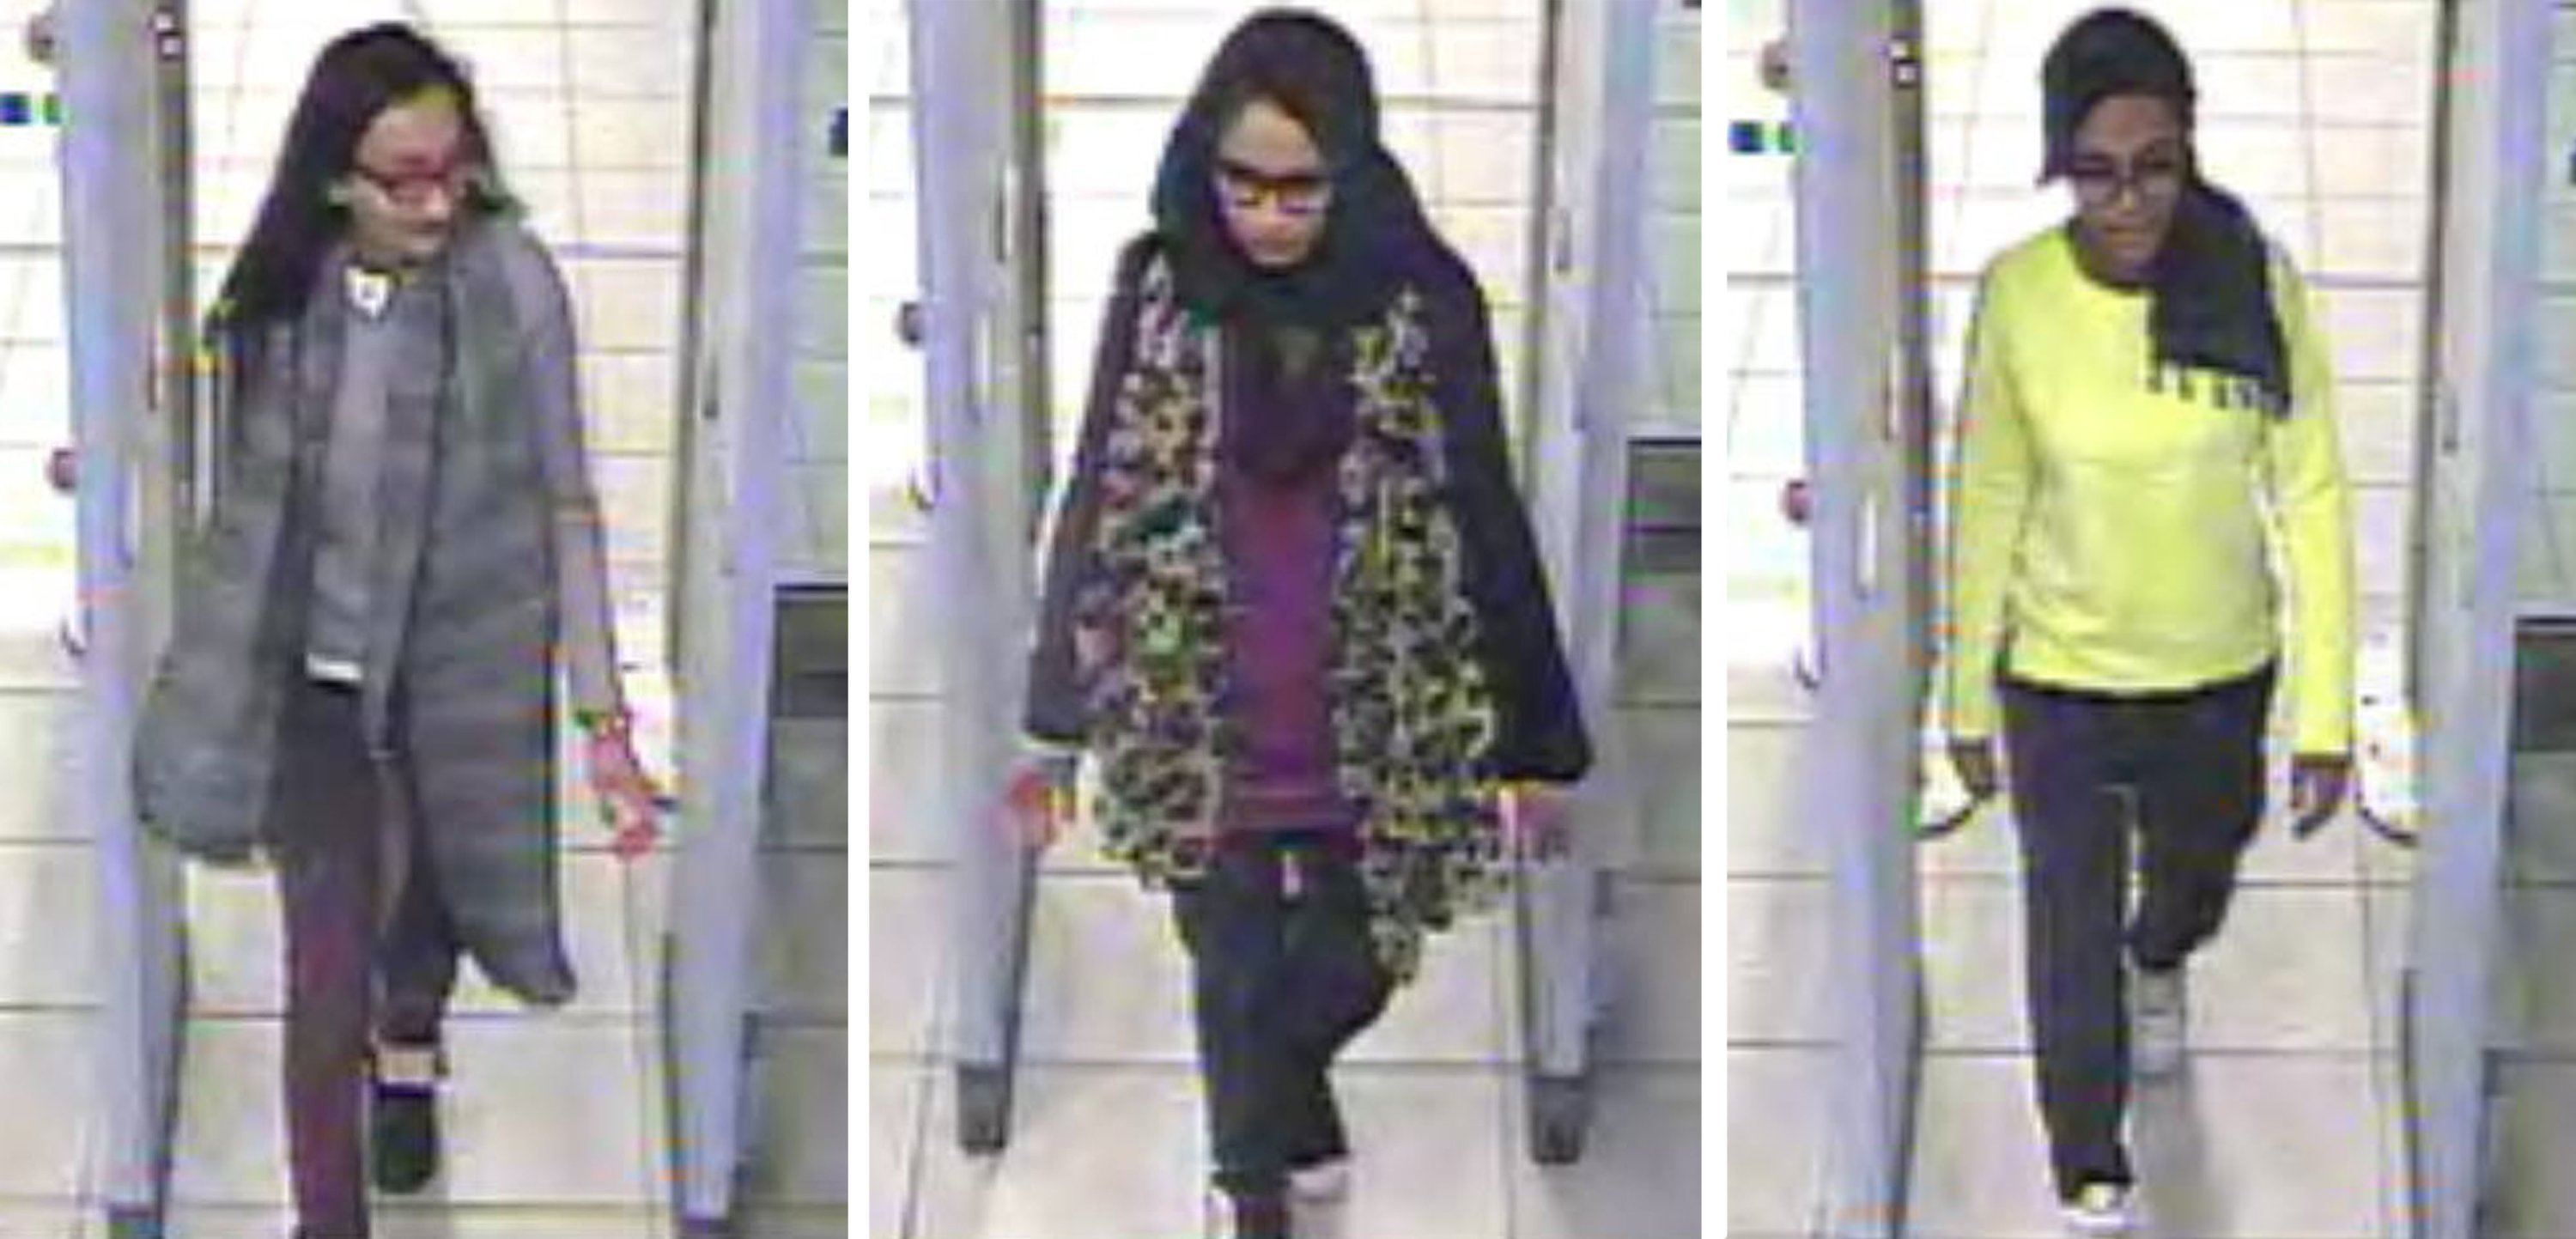 A three image combo of stills taken from CCTV issued by the Metropolitan Police shows Kadiza Sultana (L), Shamima Begum (C) and Amira Abase going through security at Gatwick airport, Crawley, the U.K. before they caught their flight to Turkey, Feb. 23, 2015. (AP Photo)